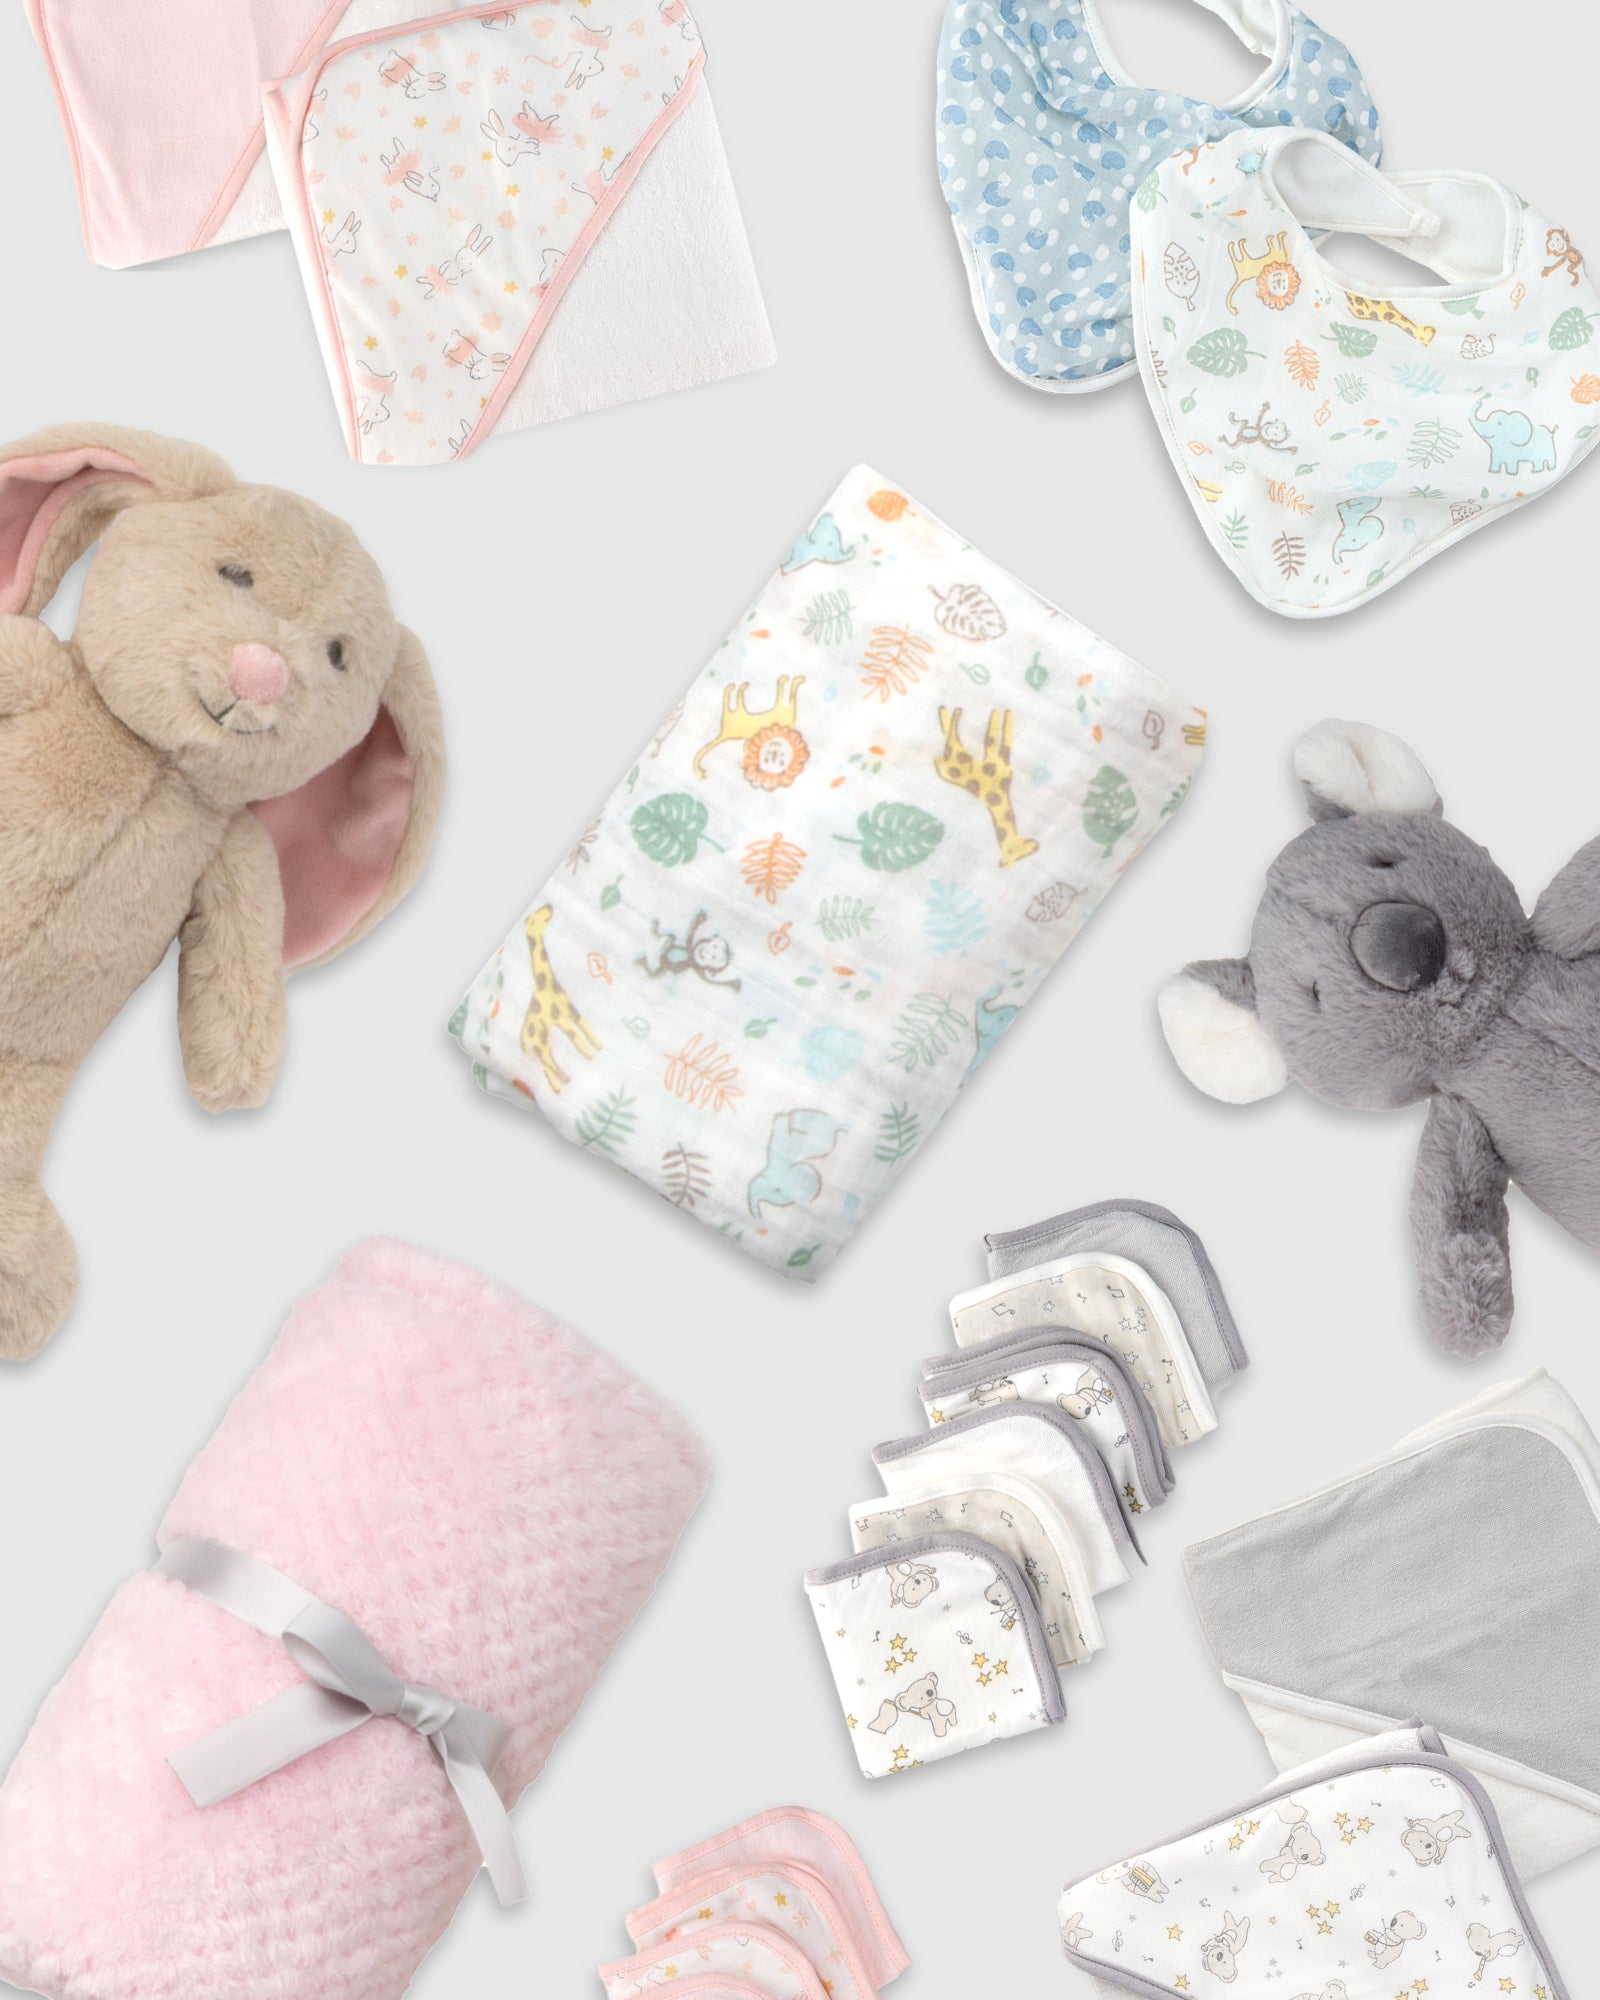 Little Linen has a variety of products ranging from bibs, hooded towels, plush toys, washers and more for your baby needs.